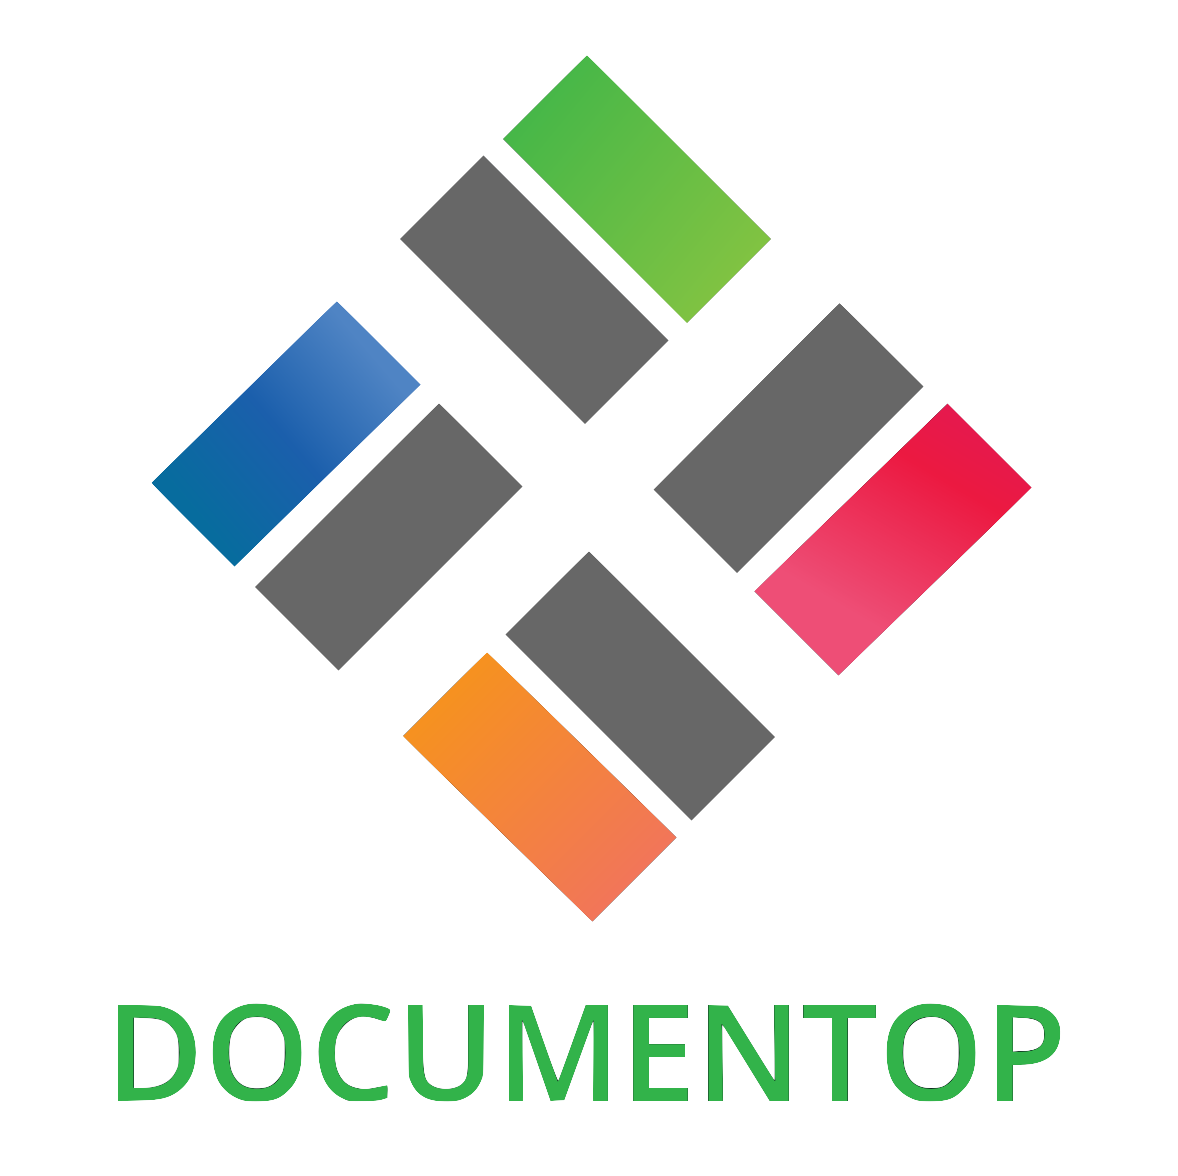 SkyLock - DocumentCloud - DOCUMENTOP COM